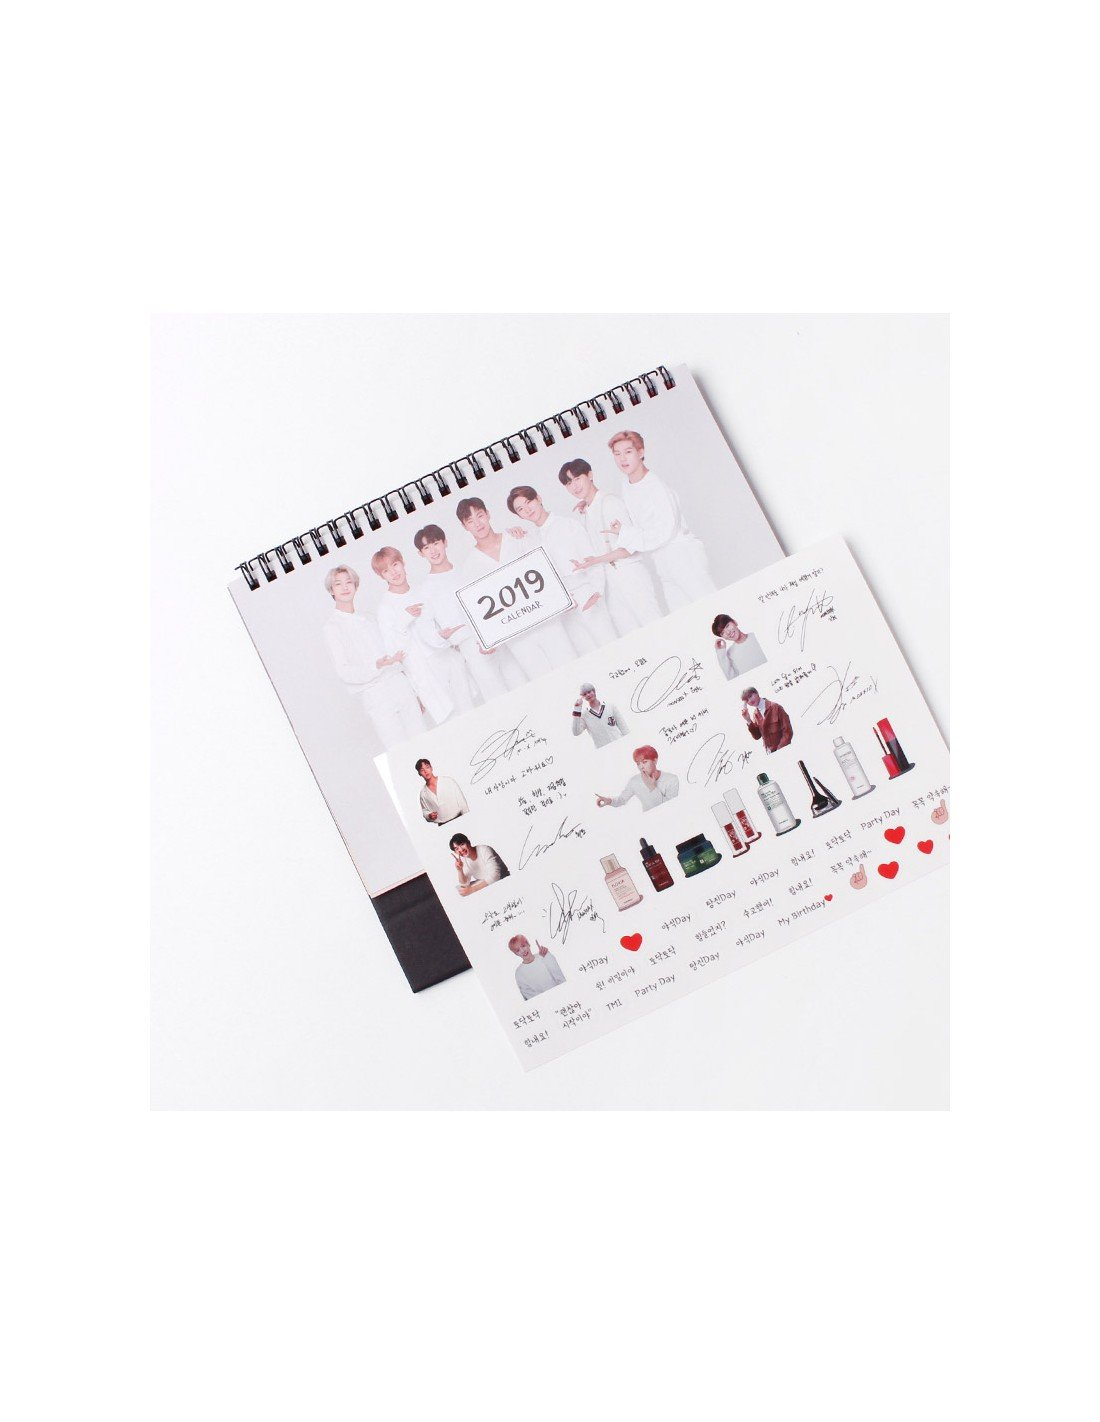 Monsta X Tonymoly Collaboration Goods - 2019 Calendar Monsta X Calendar 2019